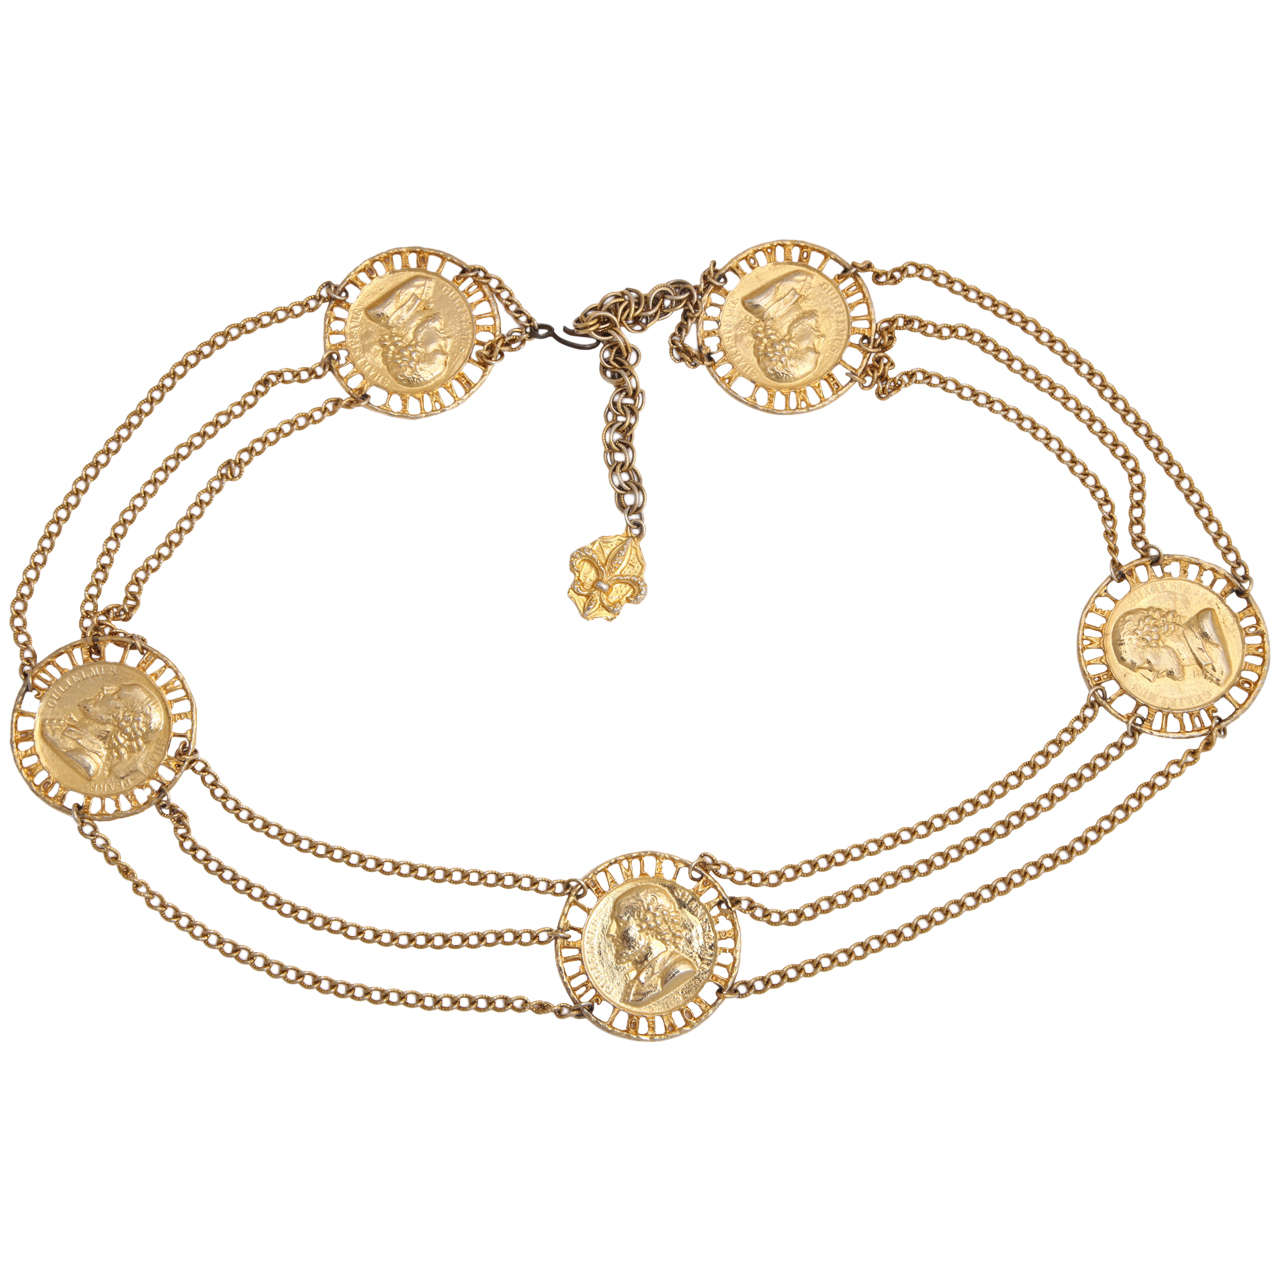 Shakespeare Coin and Chain Belt